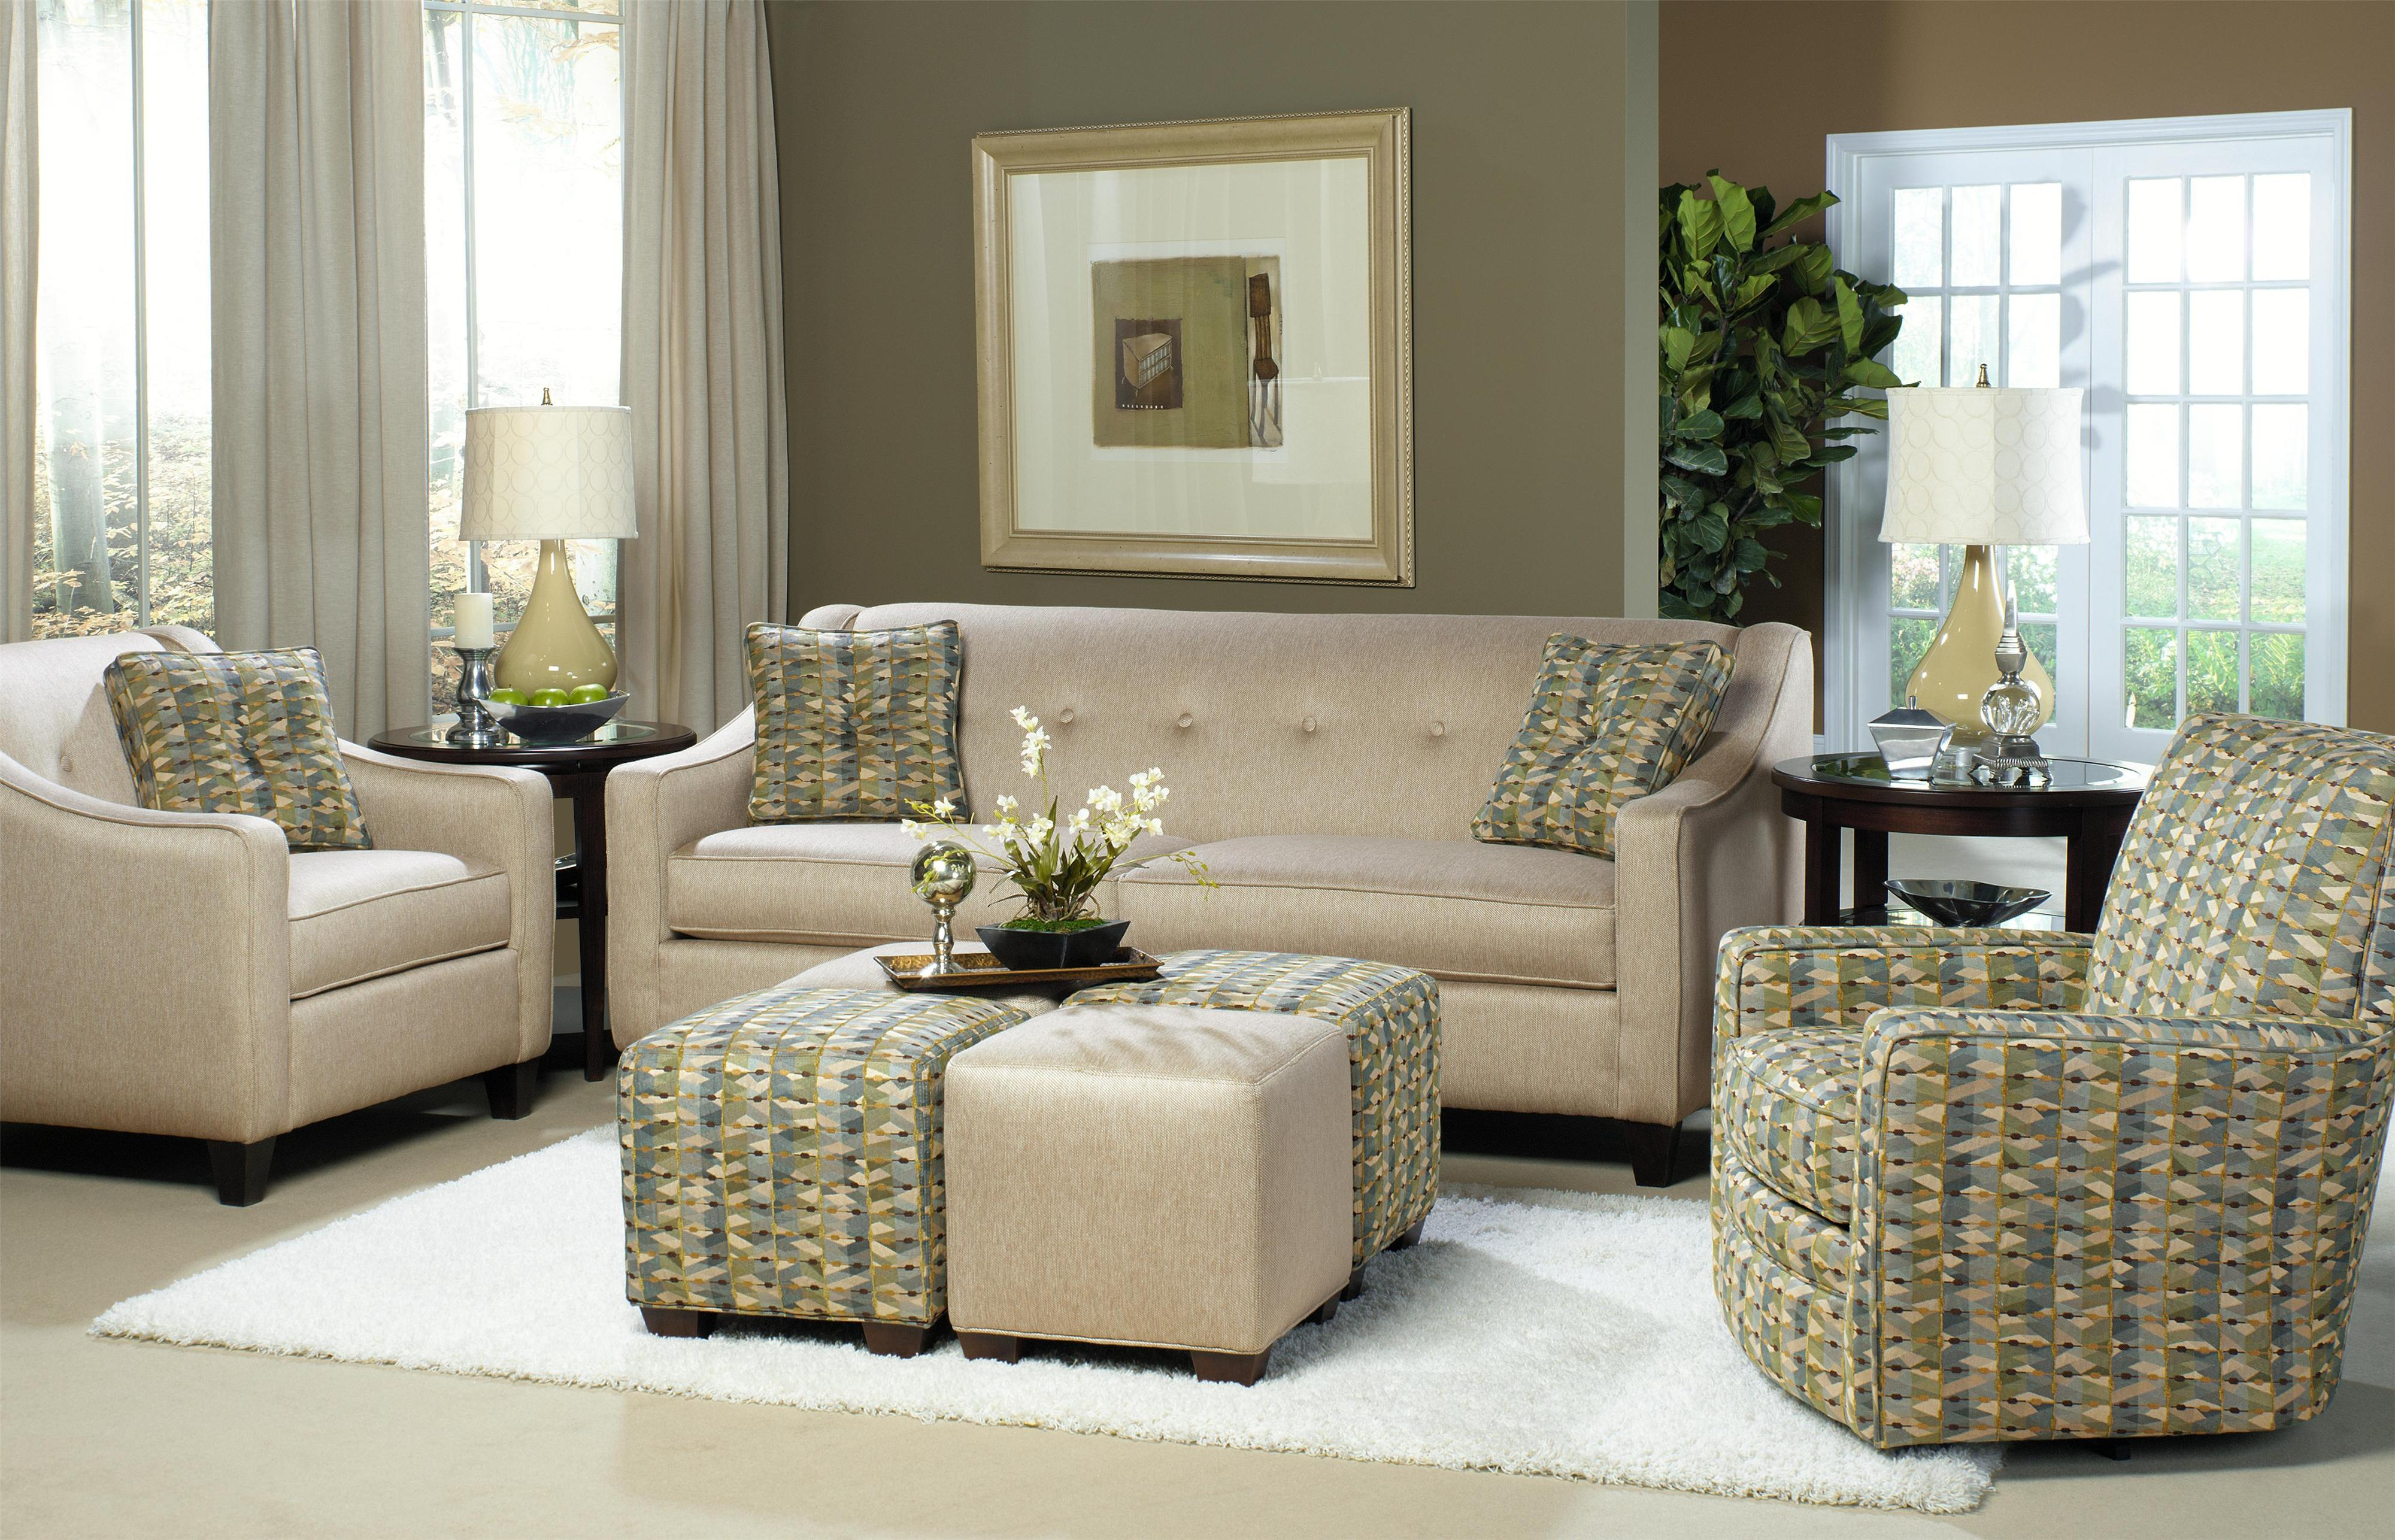 Craftmaster 7069 Contemporary Queen Sleeper With Button Detail Miskelly Furniture Sleeper Sofas